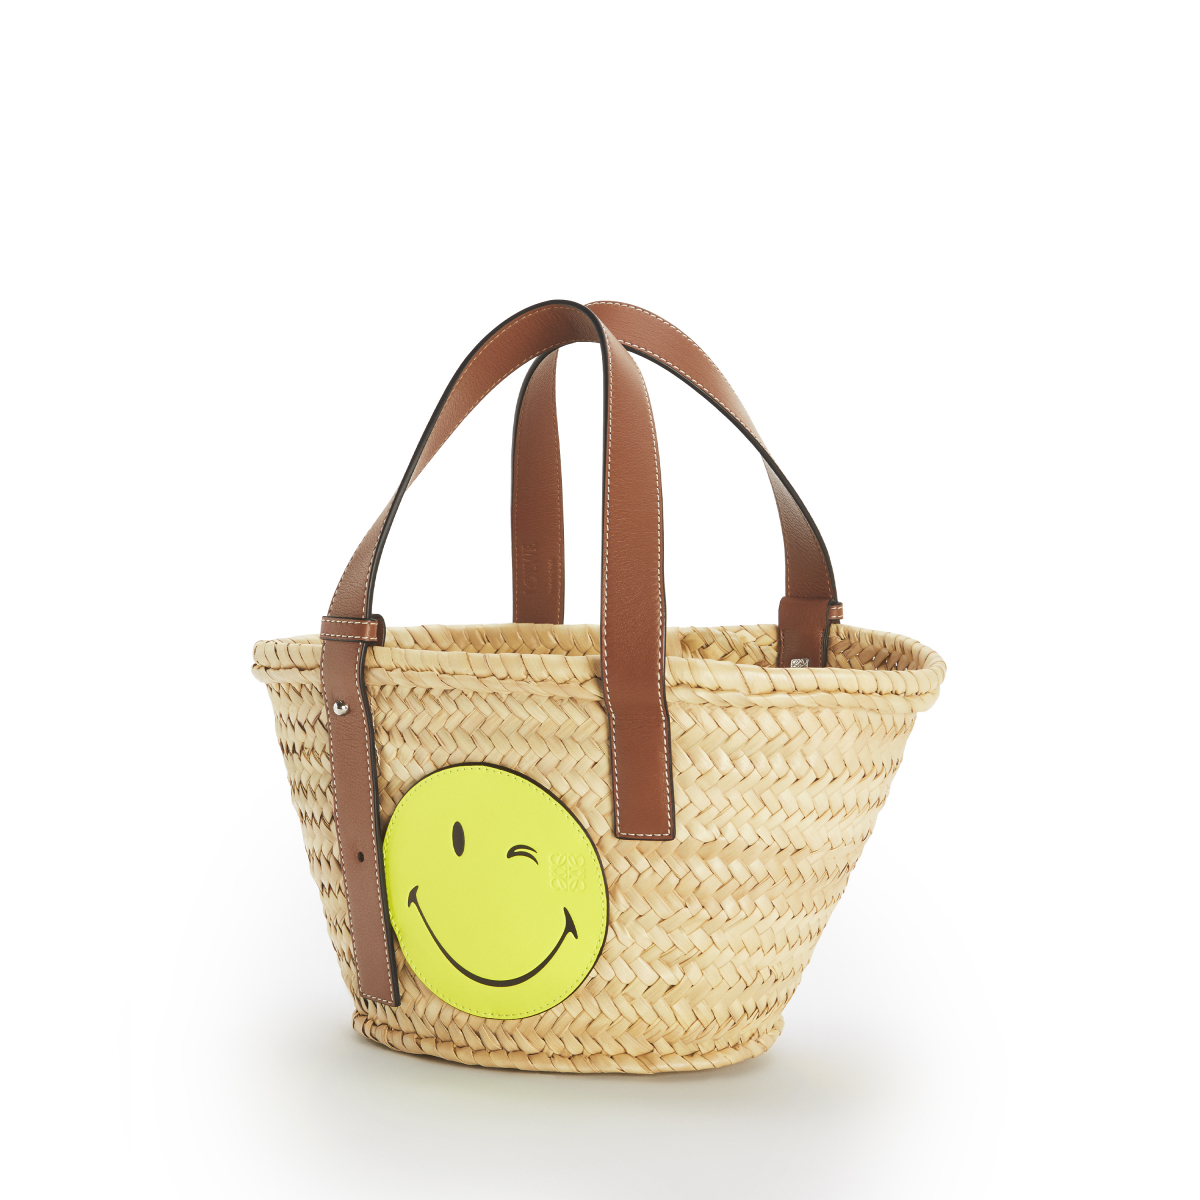 PAULA BASKET SMILEY WINK S BAG(W33×H17×D13cm)¥57,000 ※オンライン限定/ロエベ ジャパン クライアントサービス LOEWE Paula's 2020 featuring SmileyWorld®